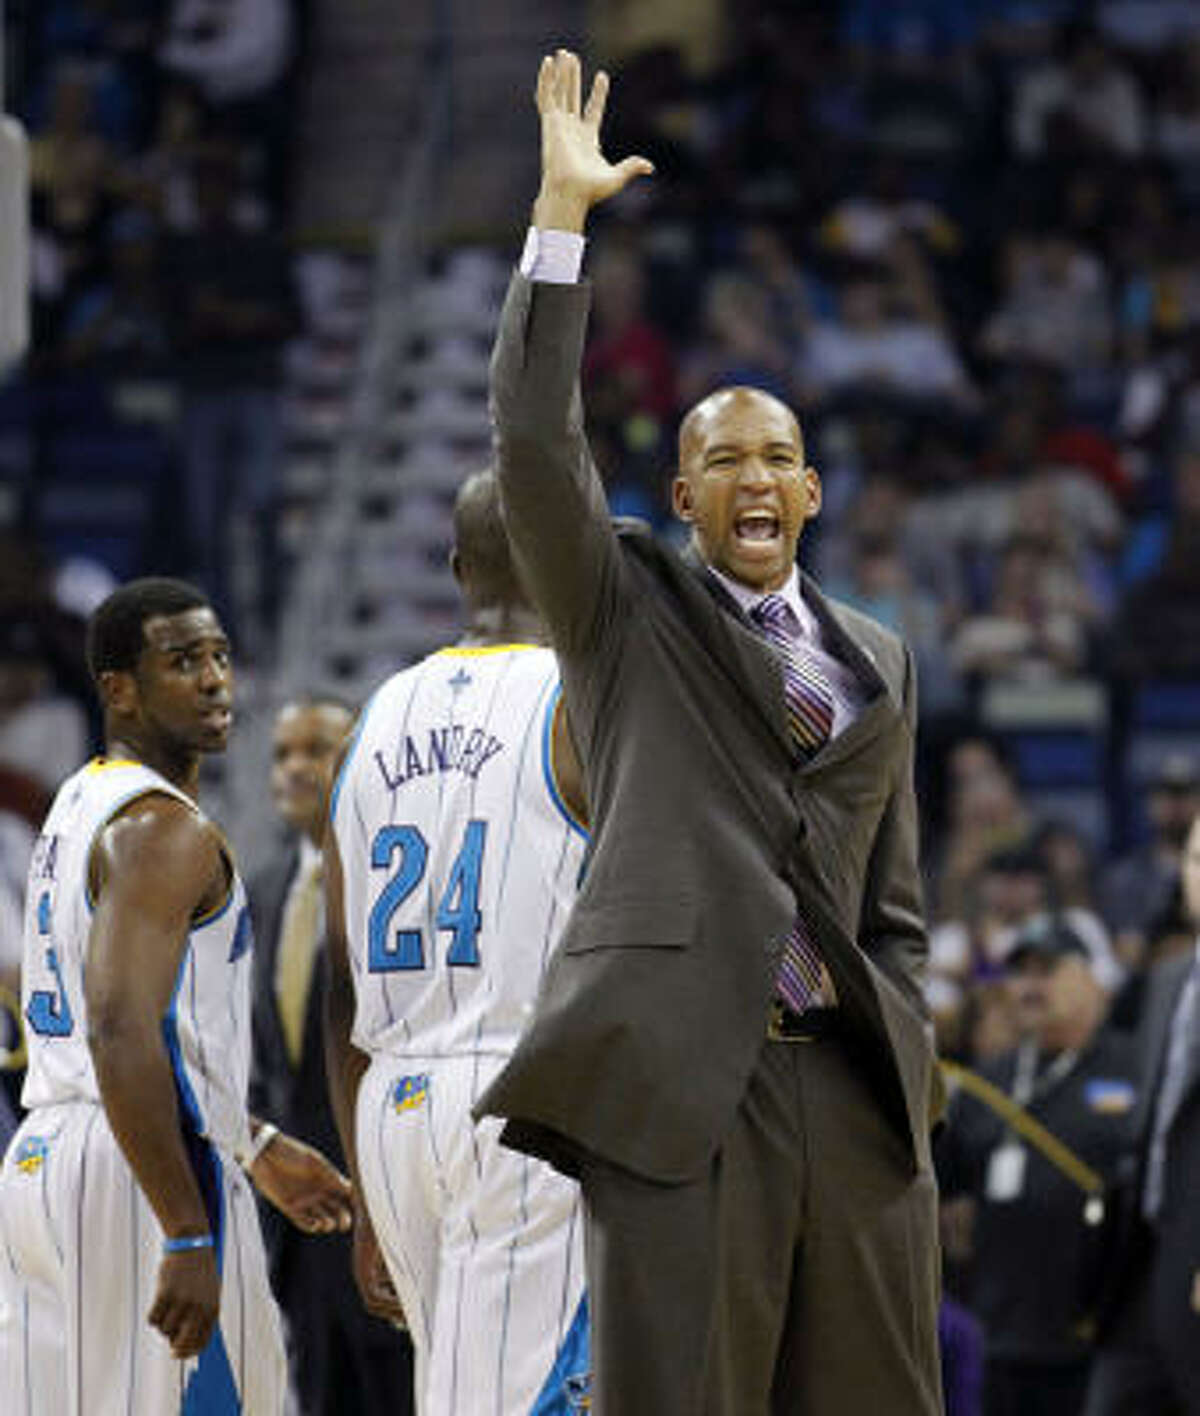 Hornets head coach Monty Williams complains to the referees as point guard Chris Paul (3) and power forward Carl Landry (24) walk off the court during a timeout.